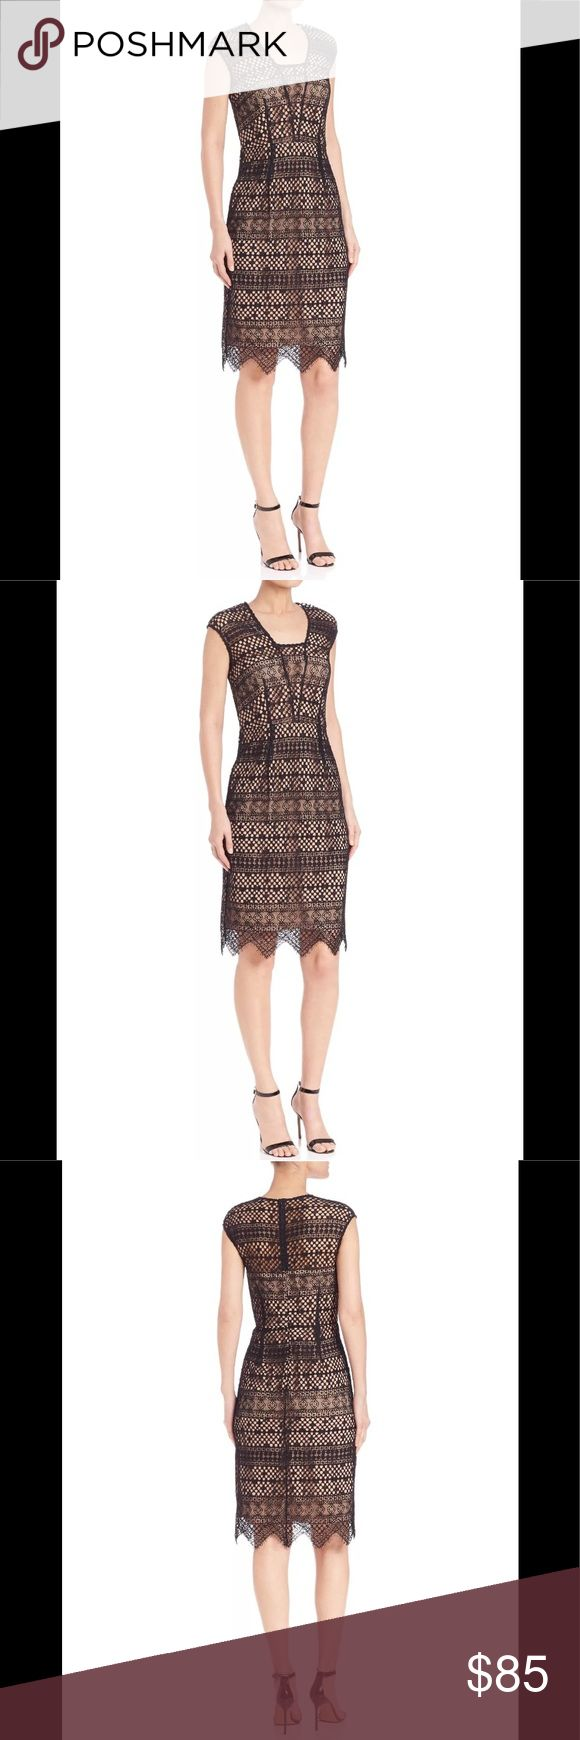 "Shoshanna Hilda Corded Lace Dress Sz 2 NWT Black Shoshanna Hilda Corded Lace Dress Sz 2 NWT Black 🌻Brand New Condition with tags. Geometric patterned stripes lend a modern touch to this formfitting lace Shoshanna dress. The elegant piece is designed with a sheer yoke and champagne-tone peek-a-boo lining. Scalloped hem. Back zip. Shell: 45.2% cotton/28.1% rayon/26.7% nylon. Lining: 100% polyester. Dry clean. Made in the USA. Style # SHOSH40869 » Measured Flat;  Bust: 15"" Waist: 13.5""  Hip…"